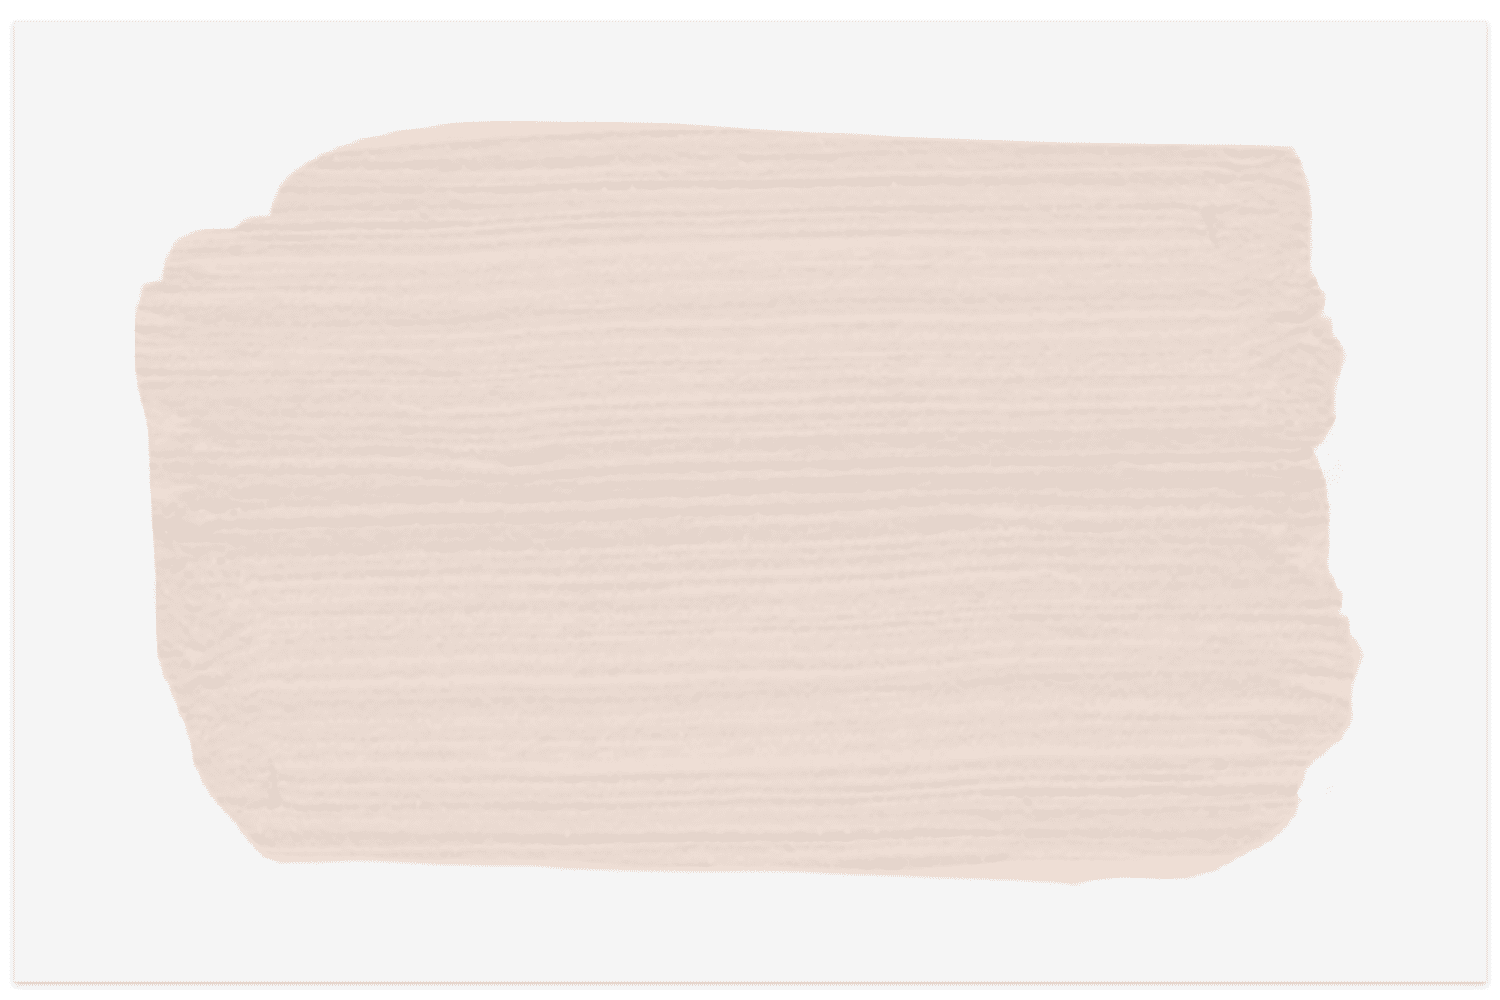 Sherwin-Williams Faint Coral swatch